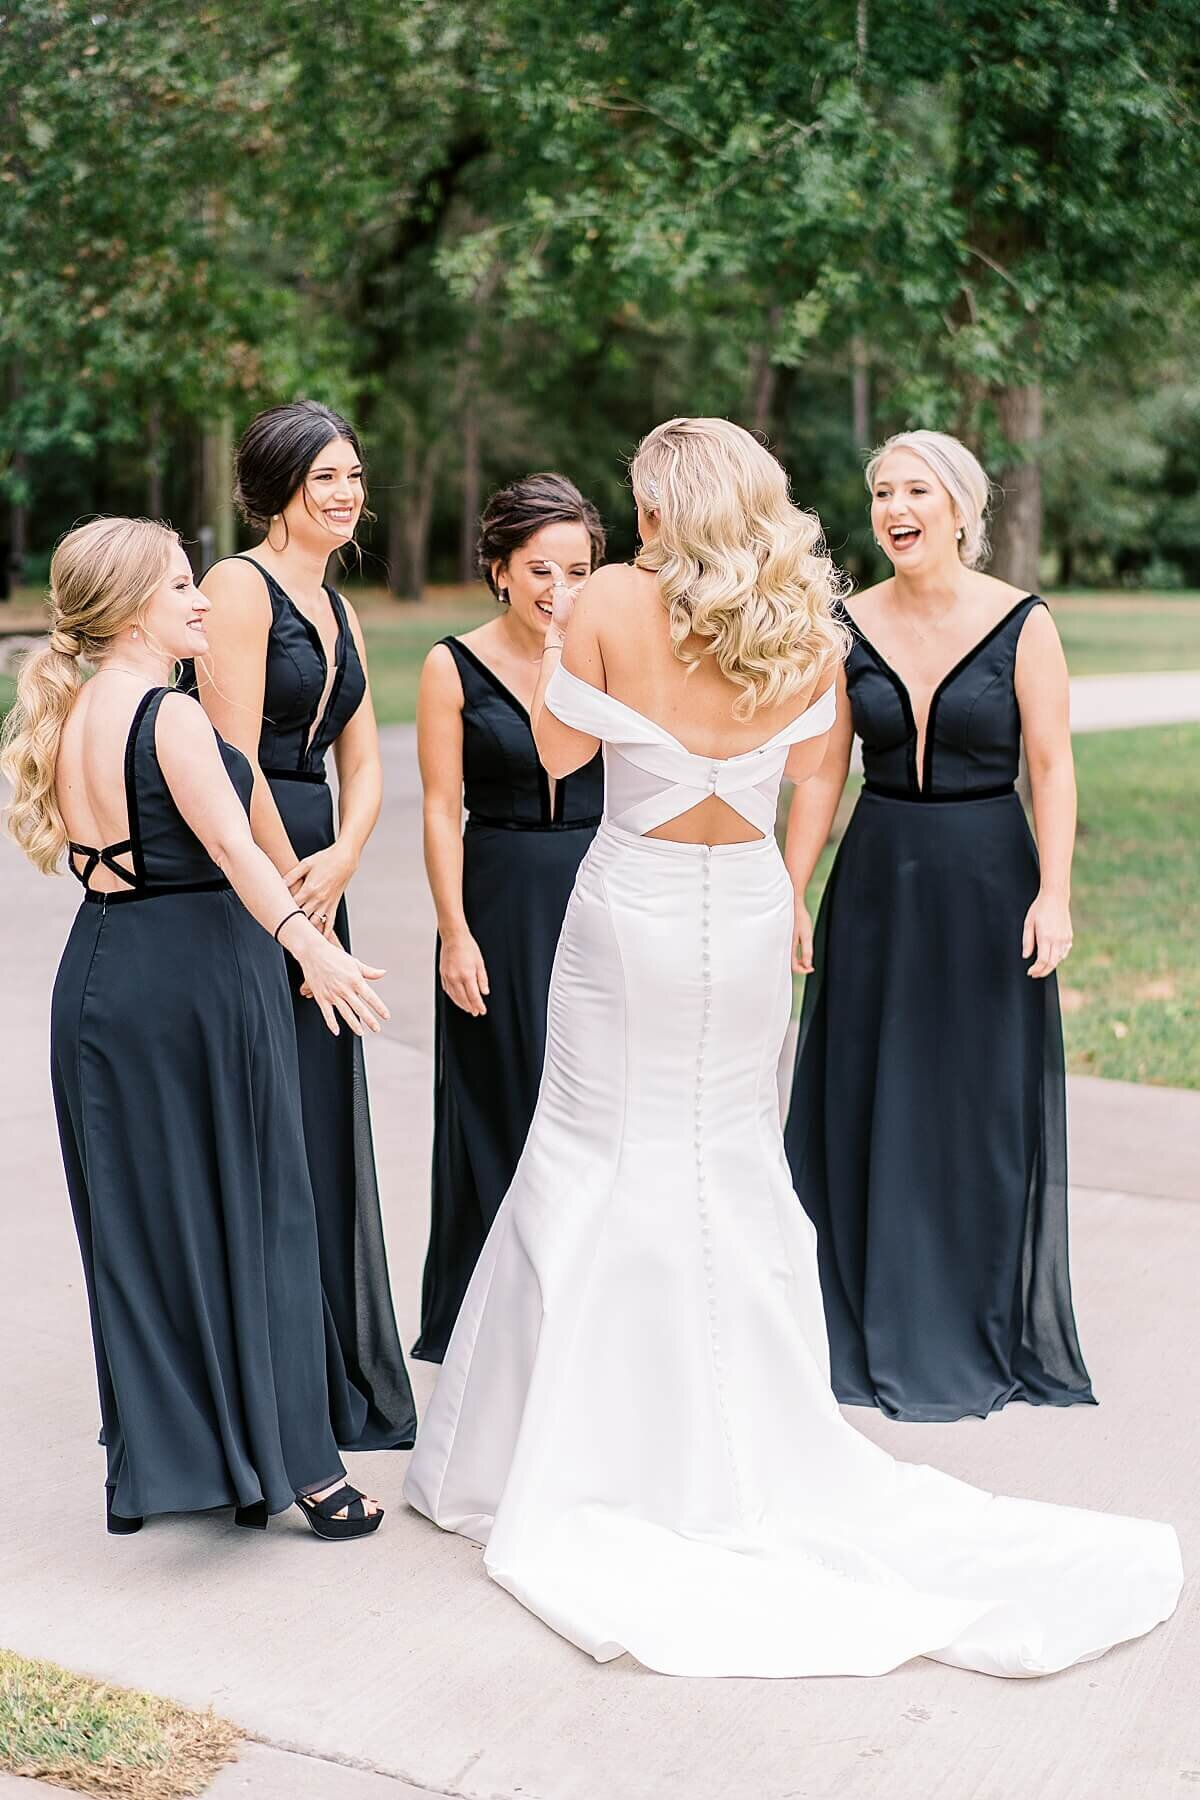 Bridesmaids first look at the Annex Wedding Venue photographed by Alicia Yarrish Photography